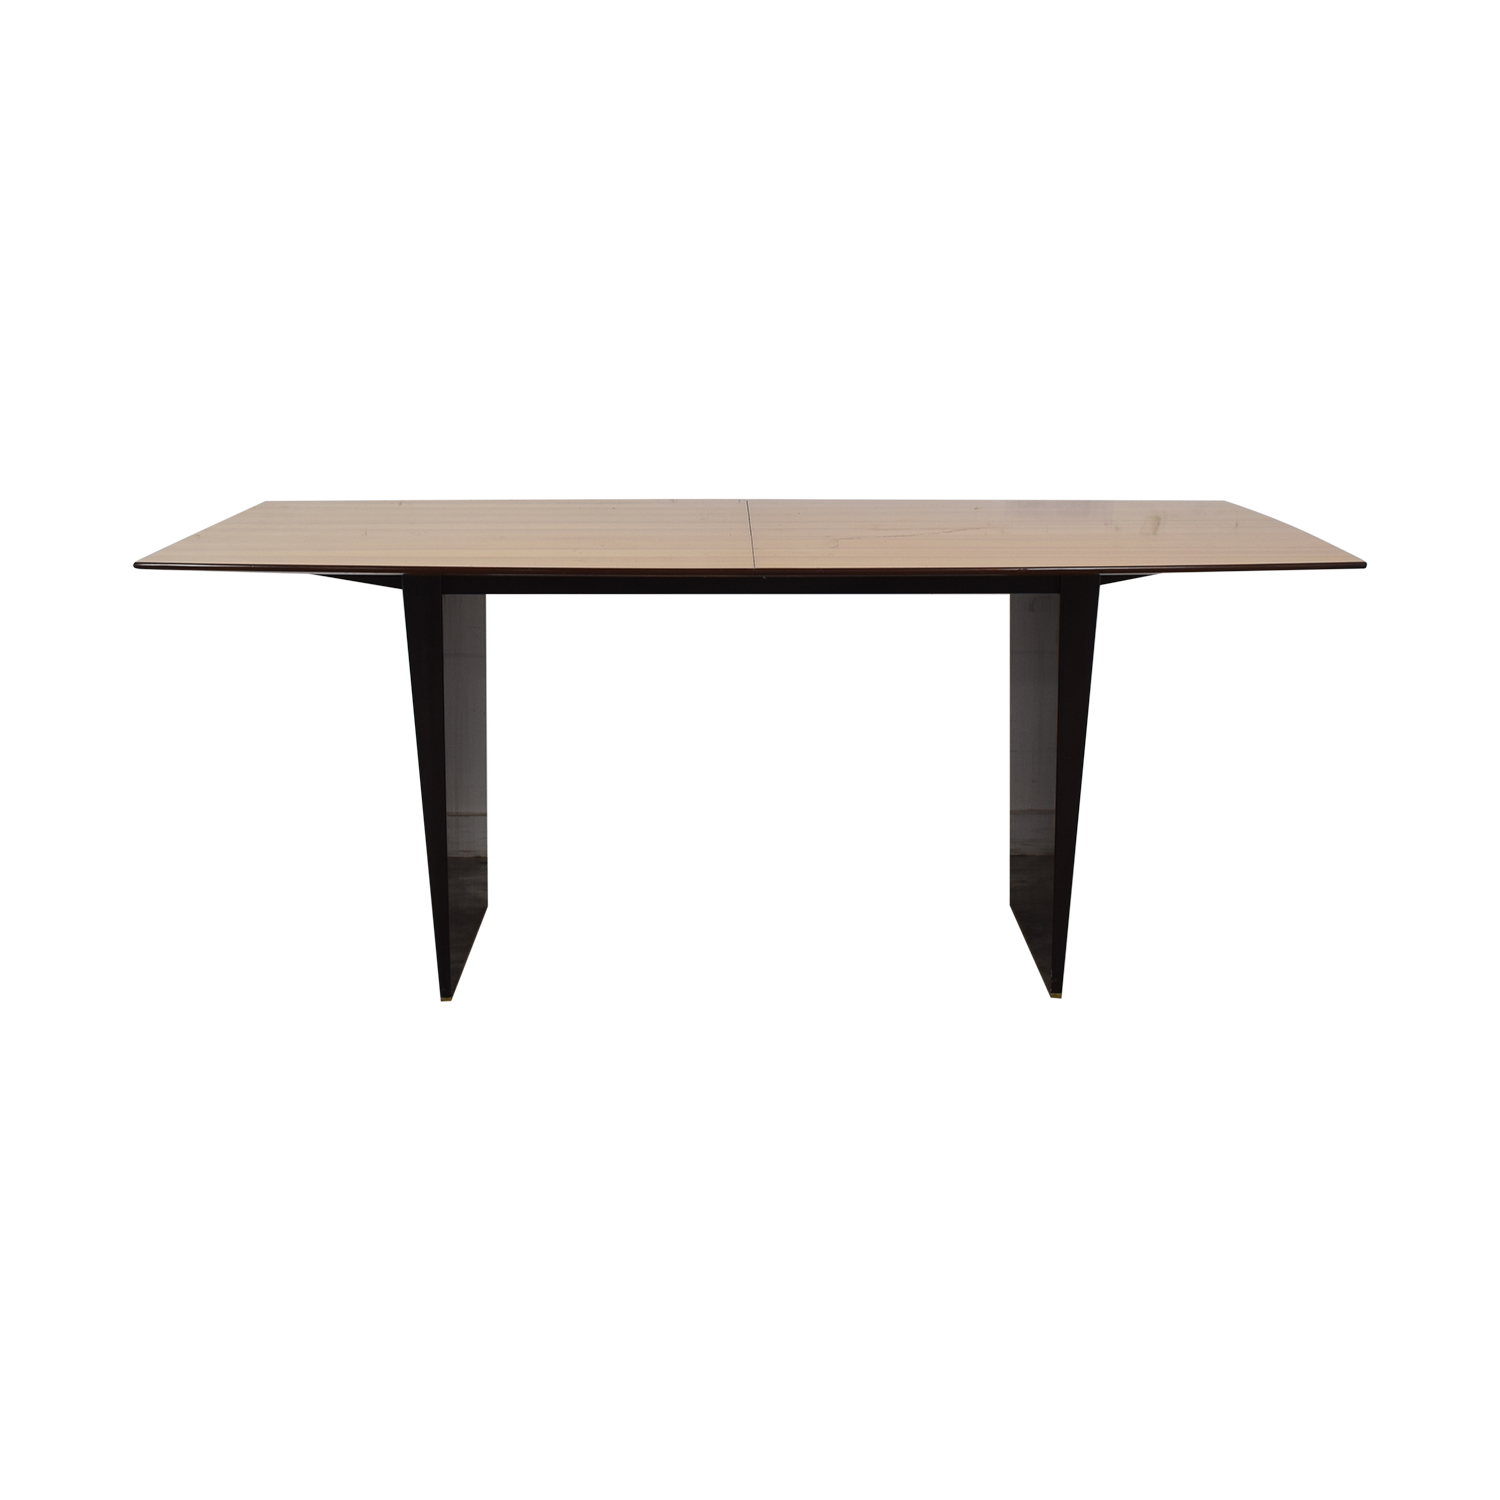 Dunbar Dunbar Edward Wormley Tawi Extendable Wood Dining Table on sale